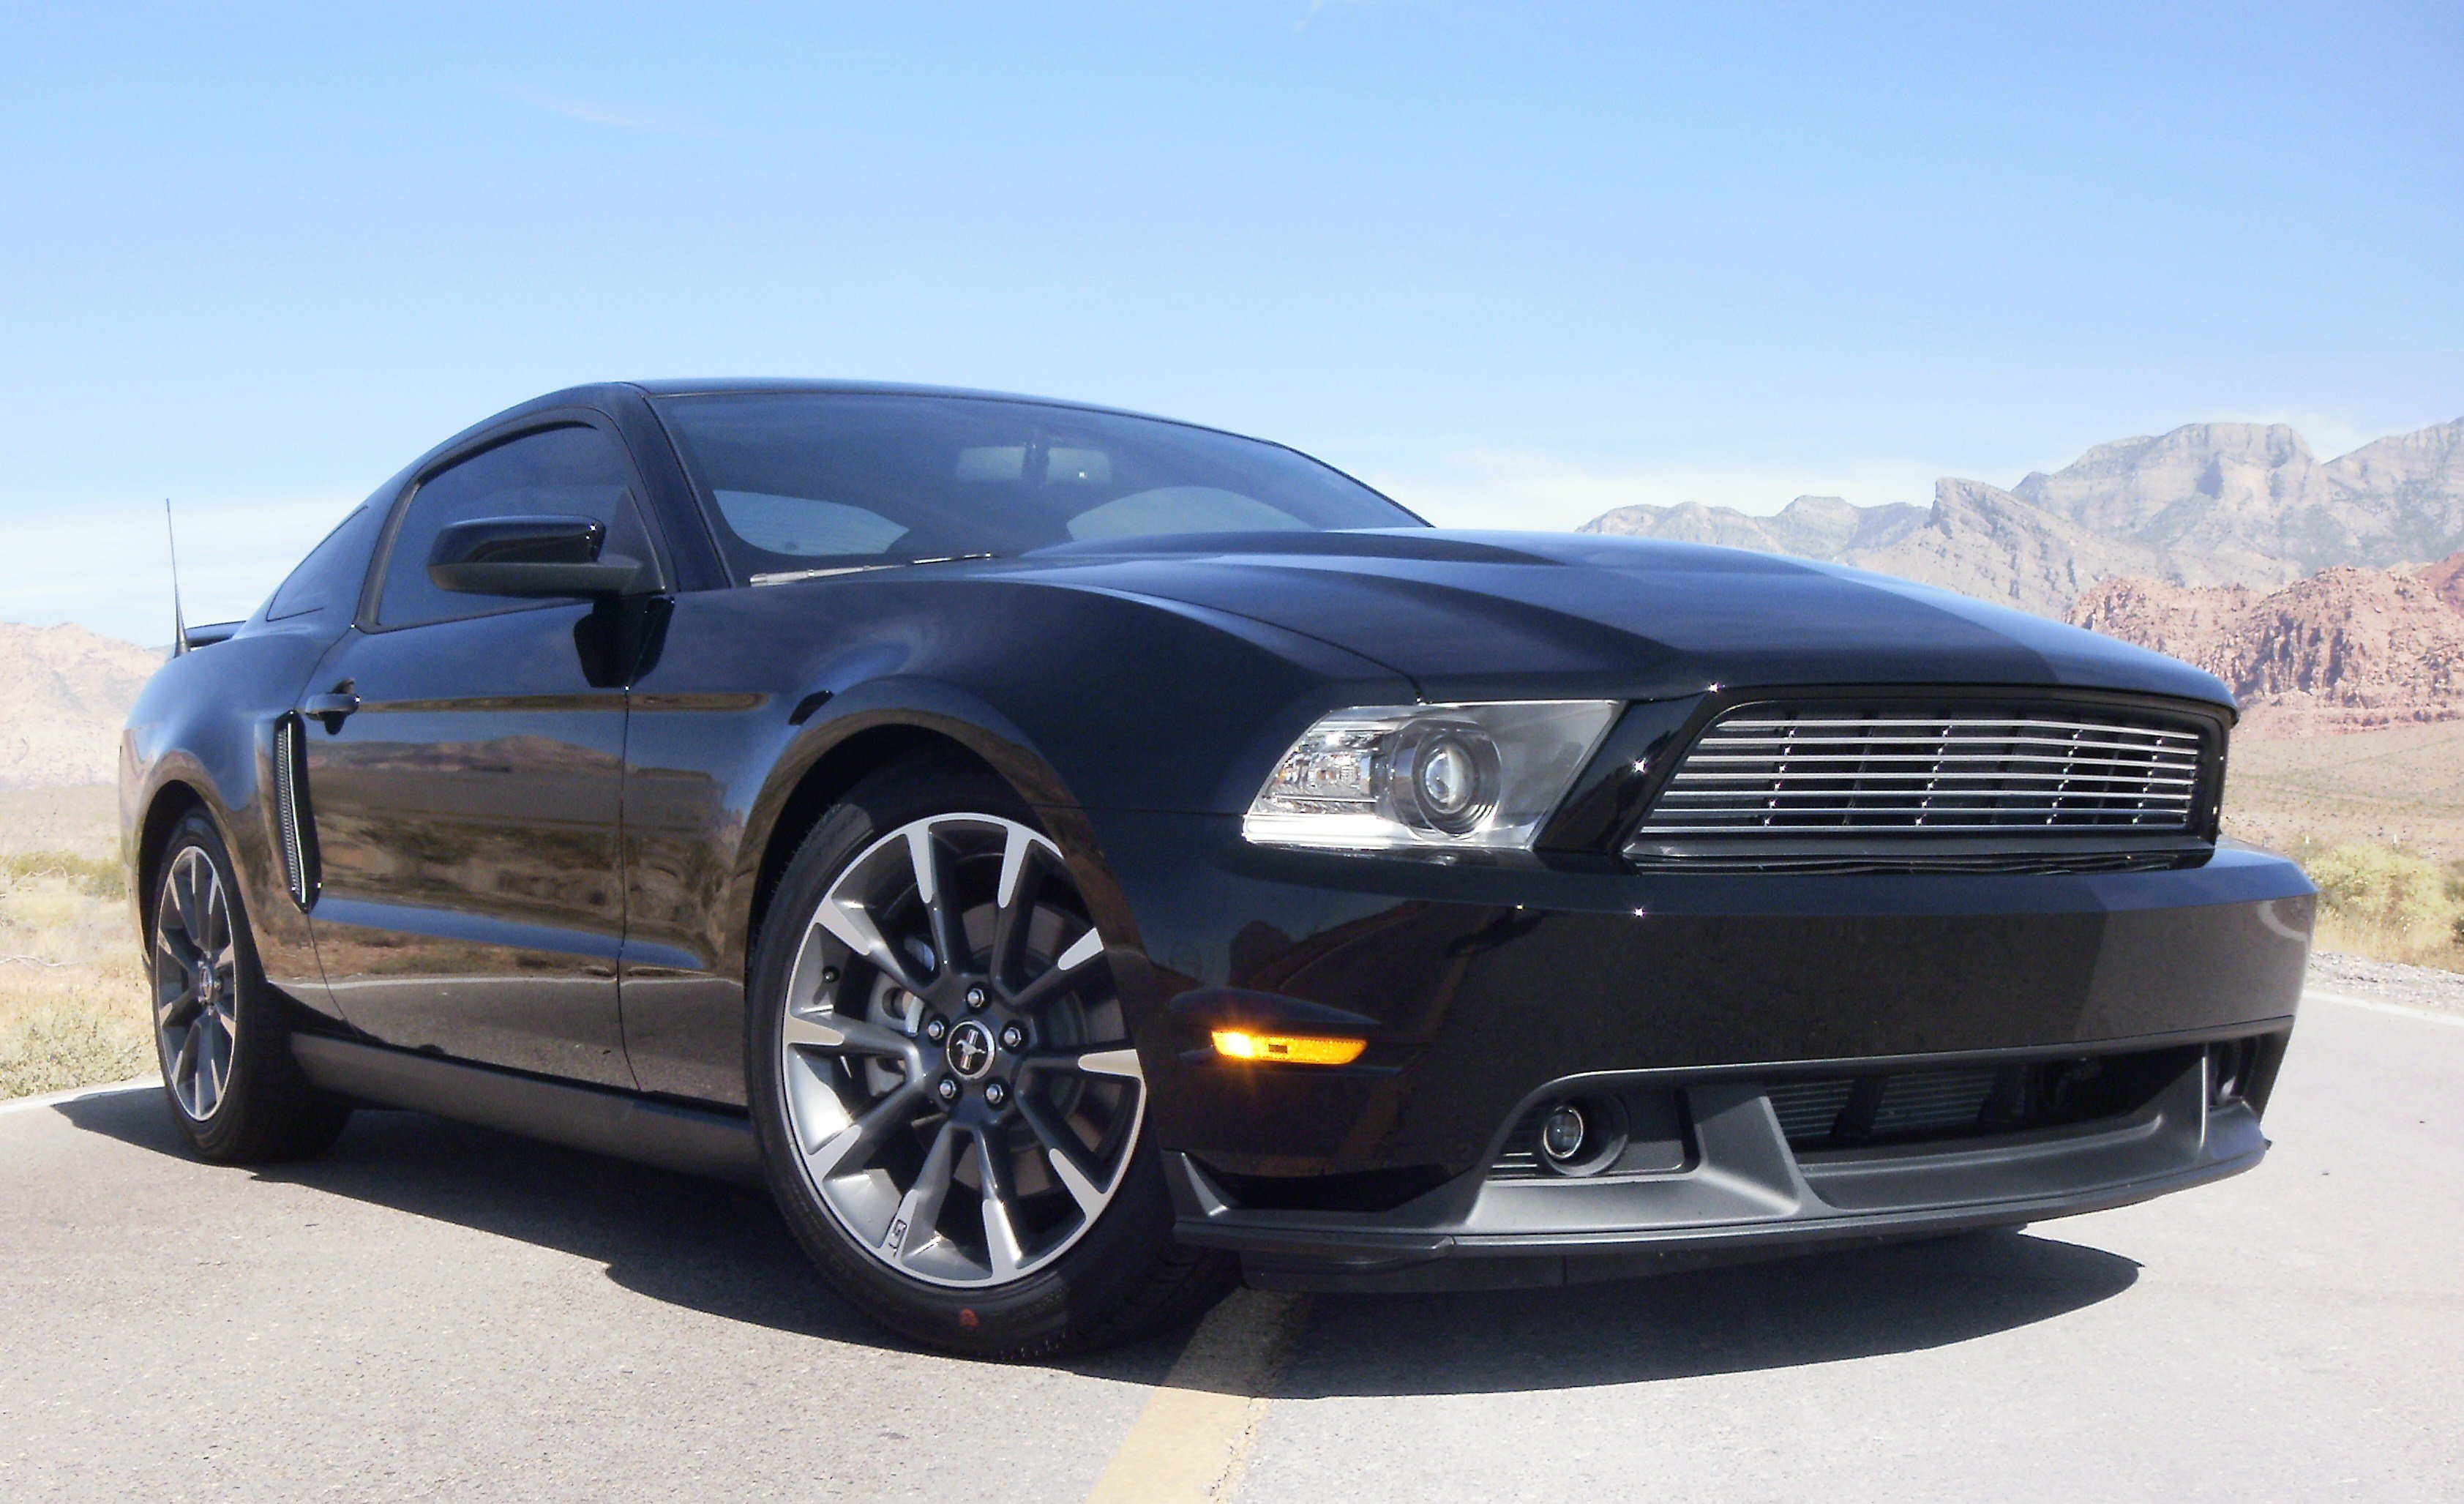 pics of the 2011 mustang gt cs on eibachs ford mustang forum. Black Bedroom Furniture Sets. Home Design Ideas